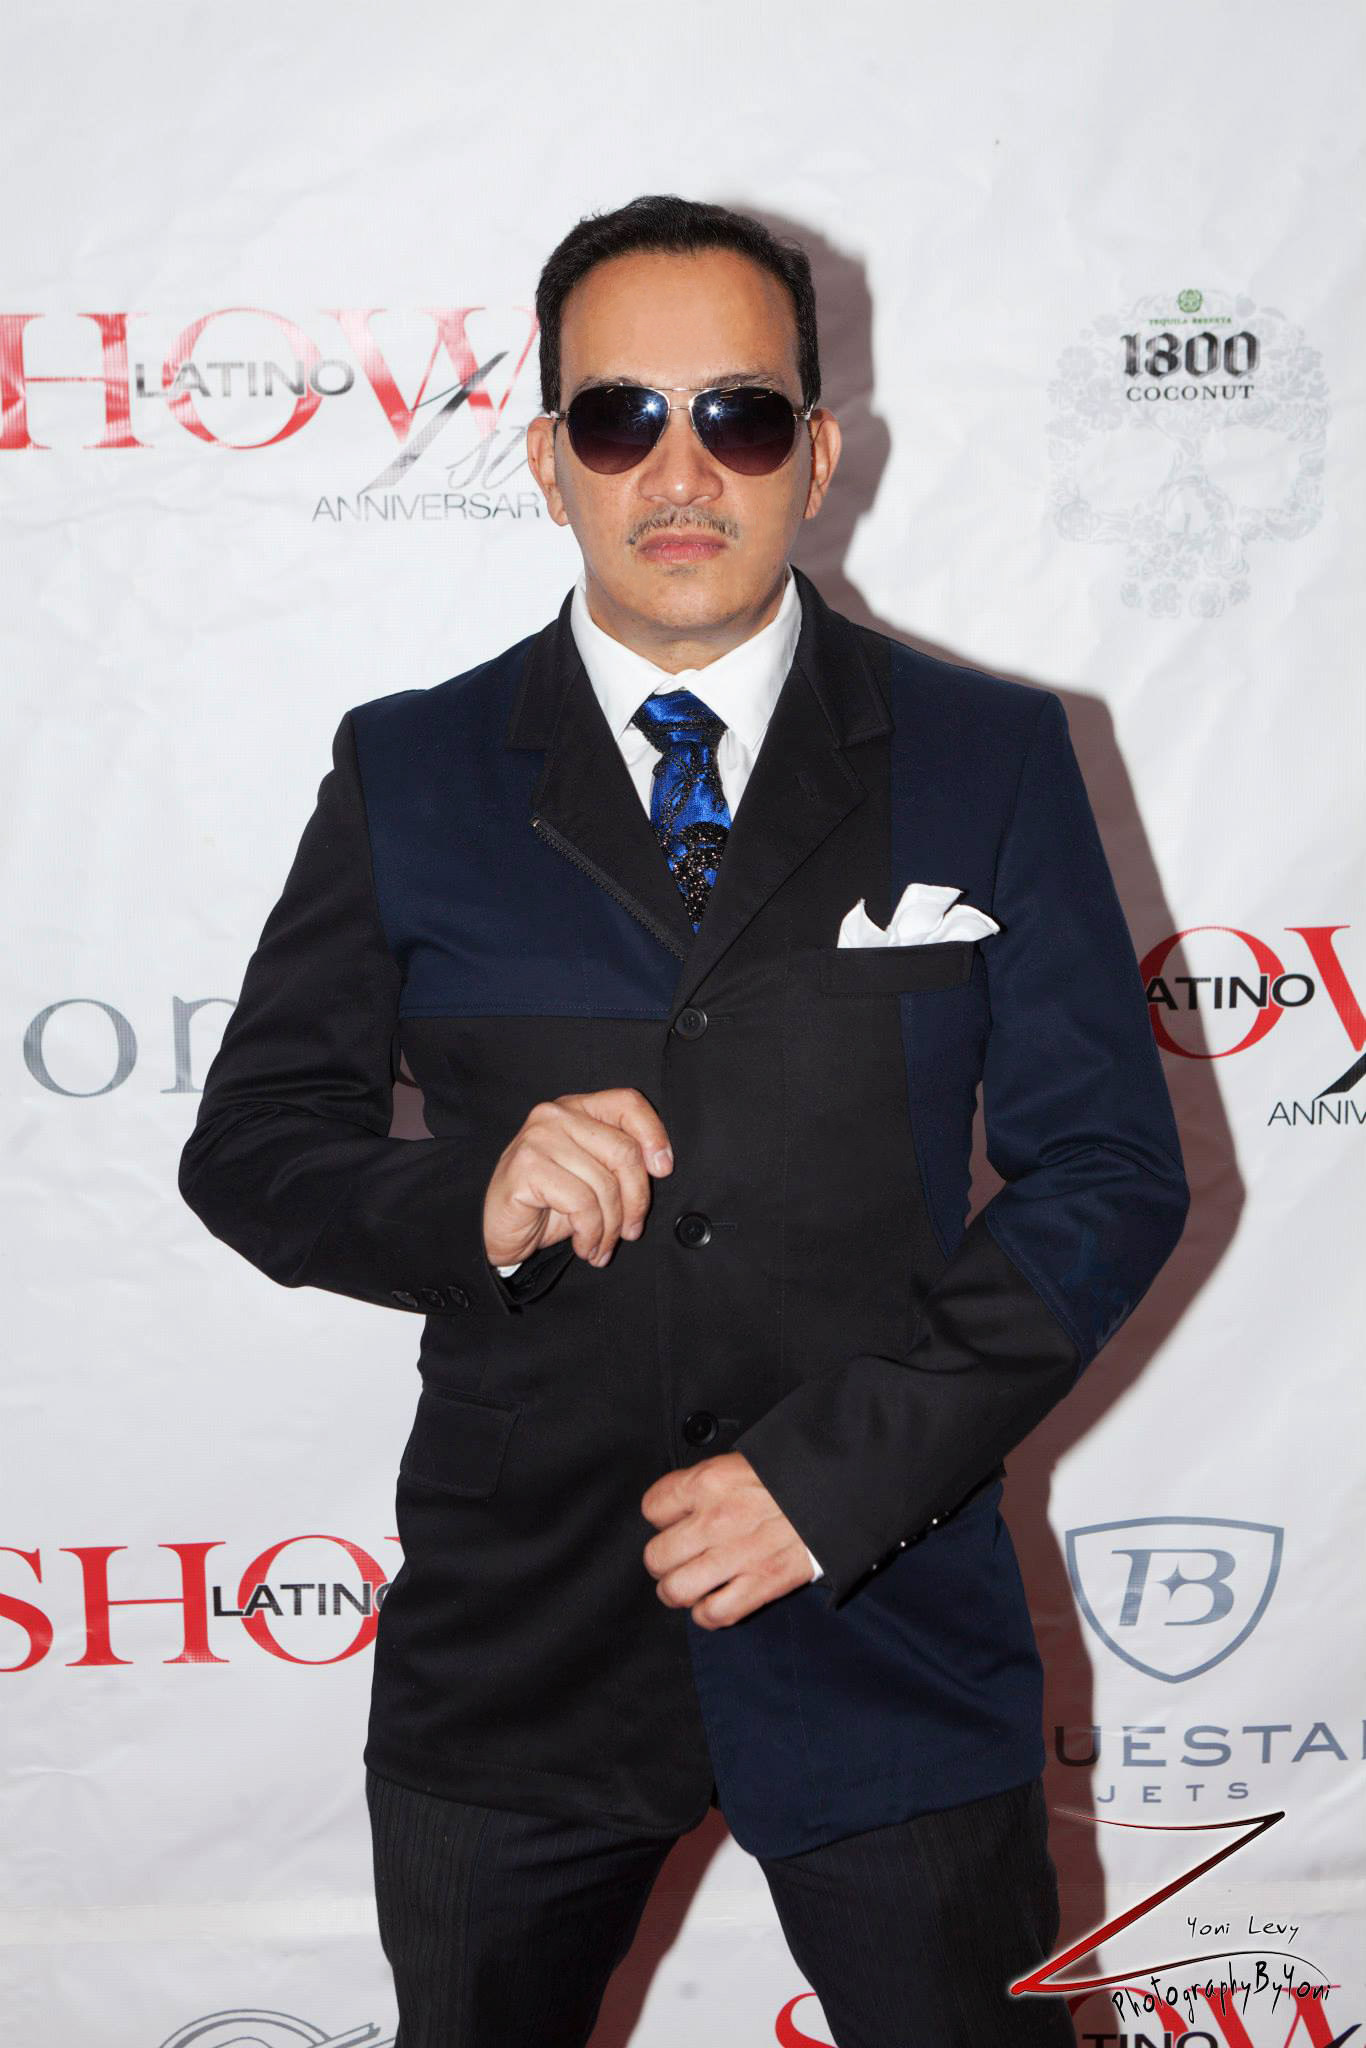 Anthony Rubio on the Red Carpet